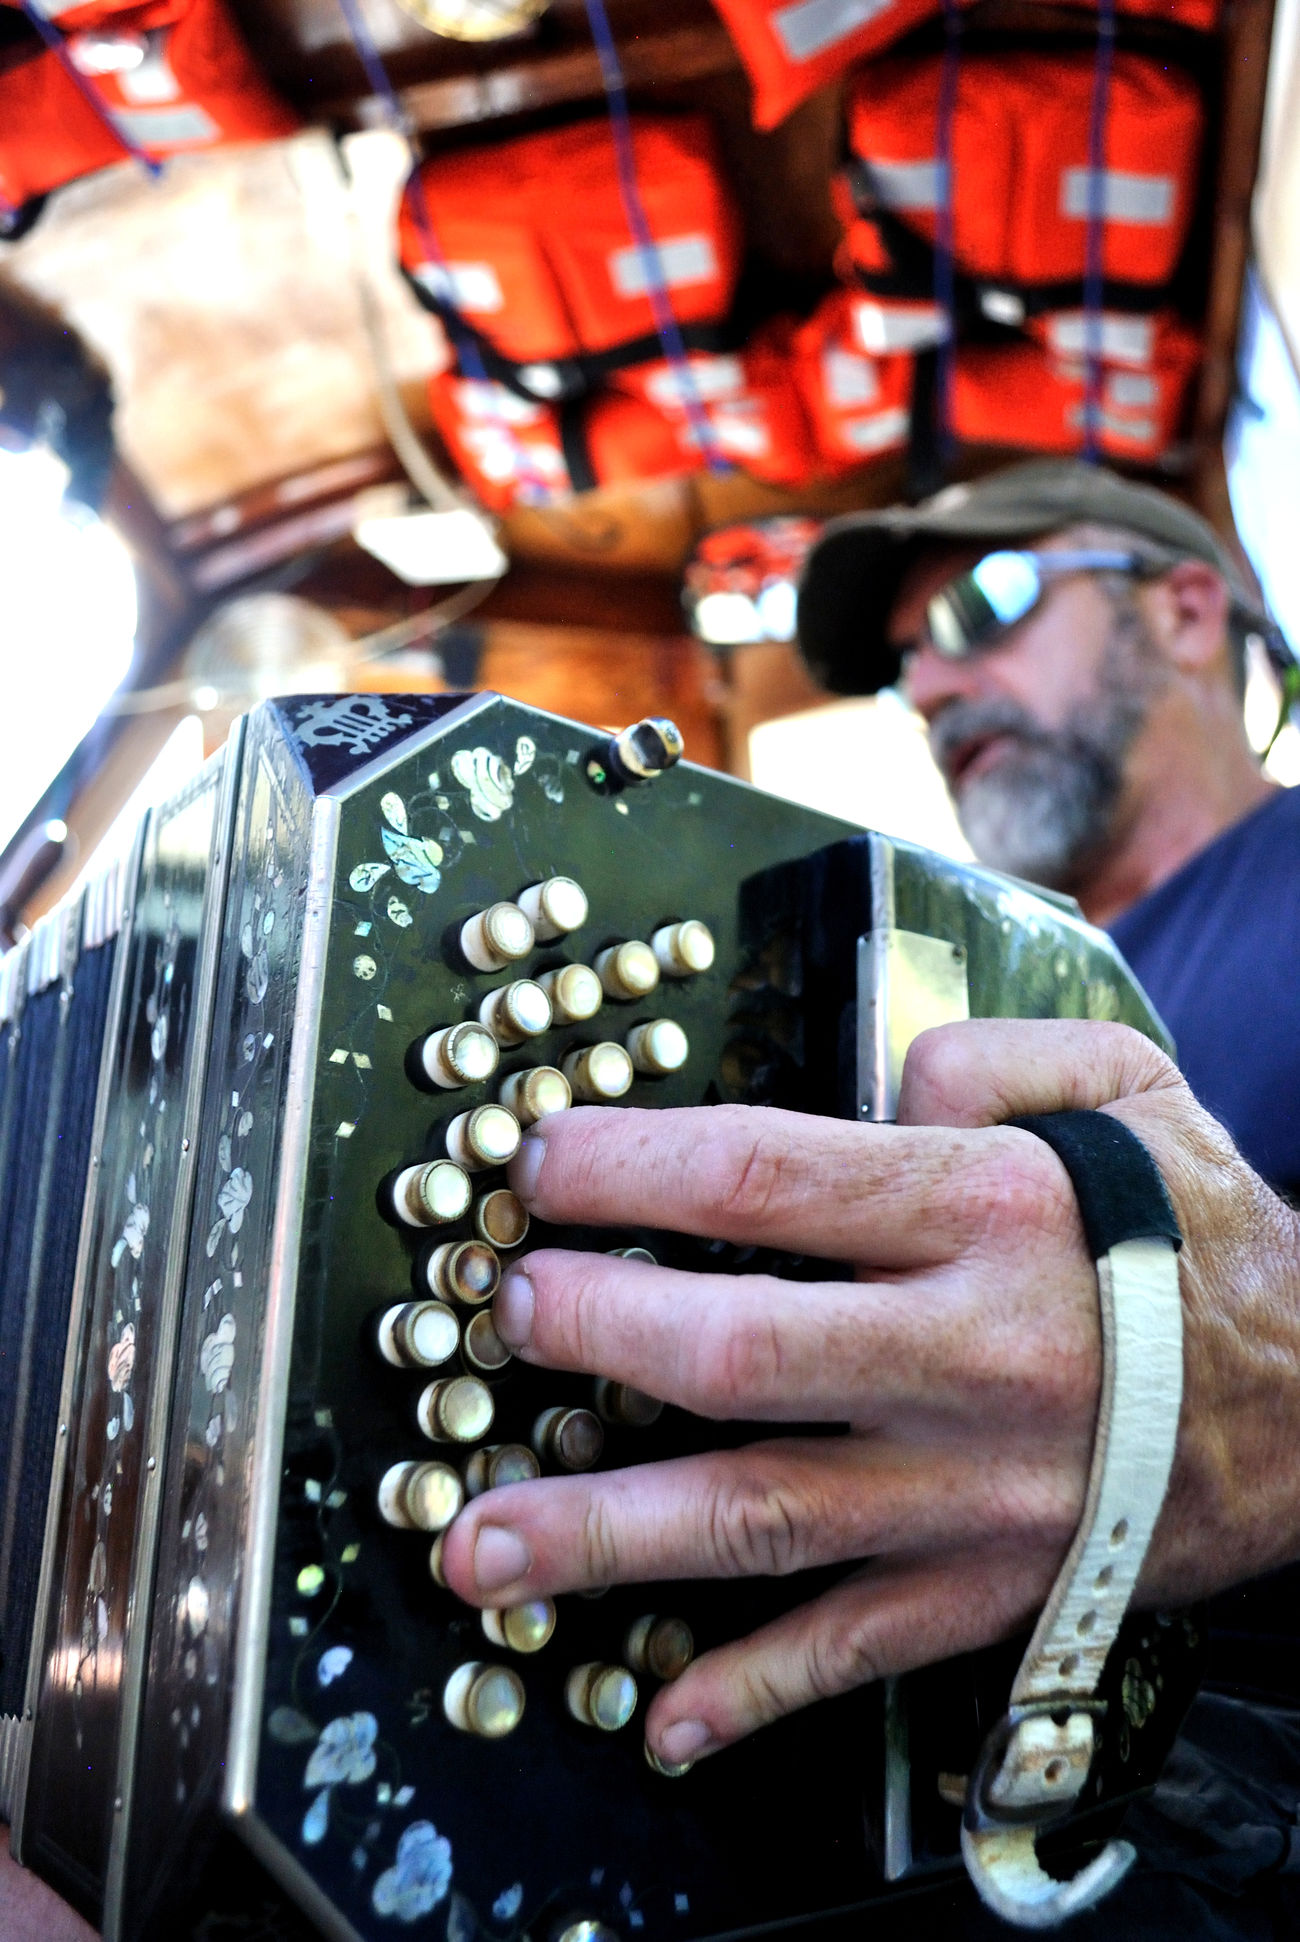 Bandoneon on board Bandoneon Boat Trip Close-up Hand Live Music Music Musical Instrument Musician Old Music People Performance Portrait Tango